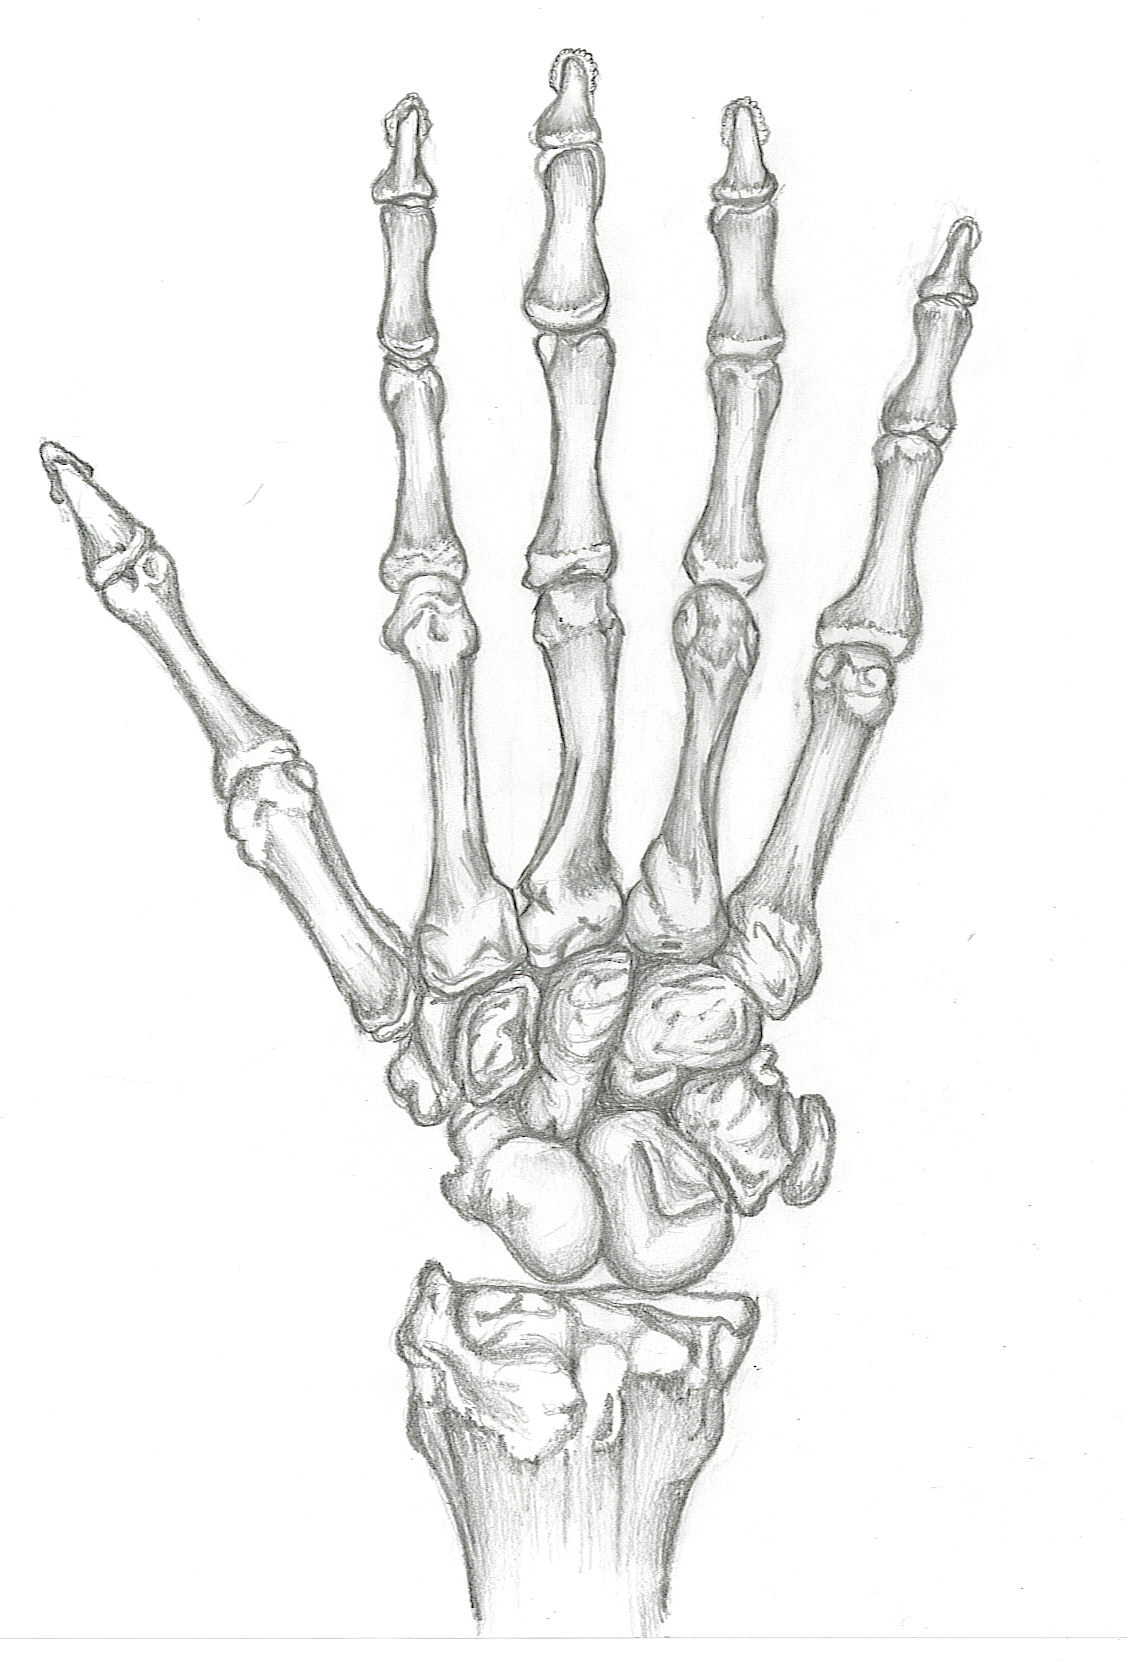 1127x1670 Study Of Skeleton Hand By Skeletonofarose